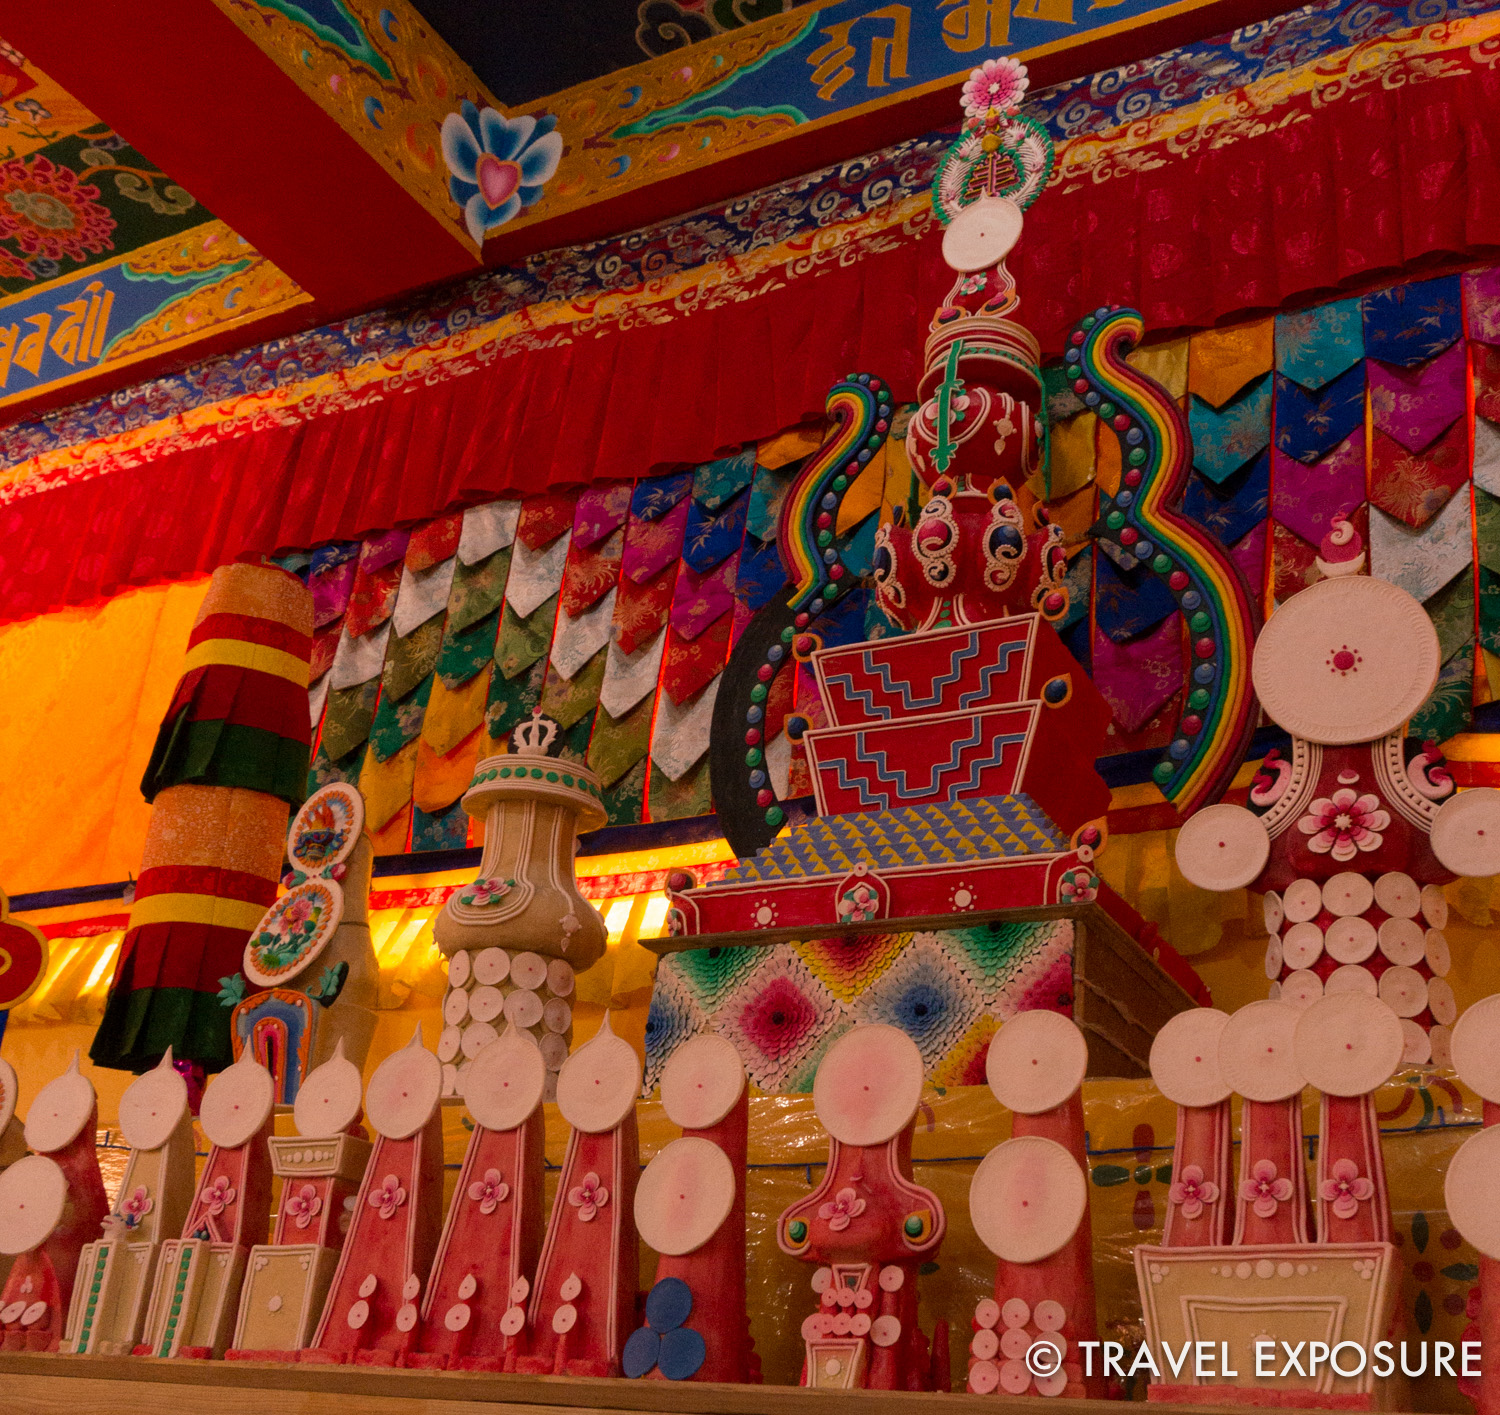 Tormas, colored sculptures made of Yak butter, inside Samdruptse Temple in Namchi, Sikkim